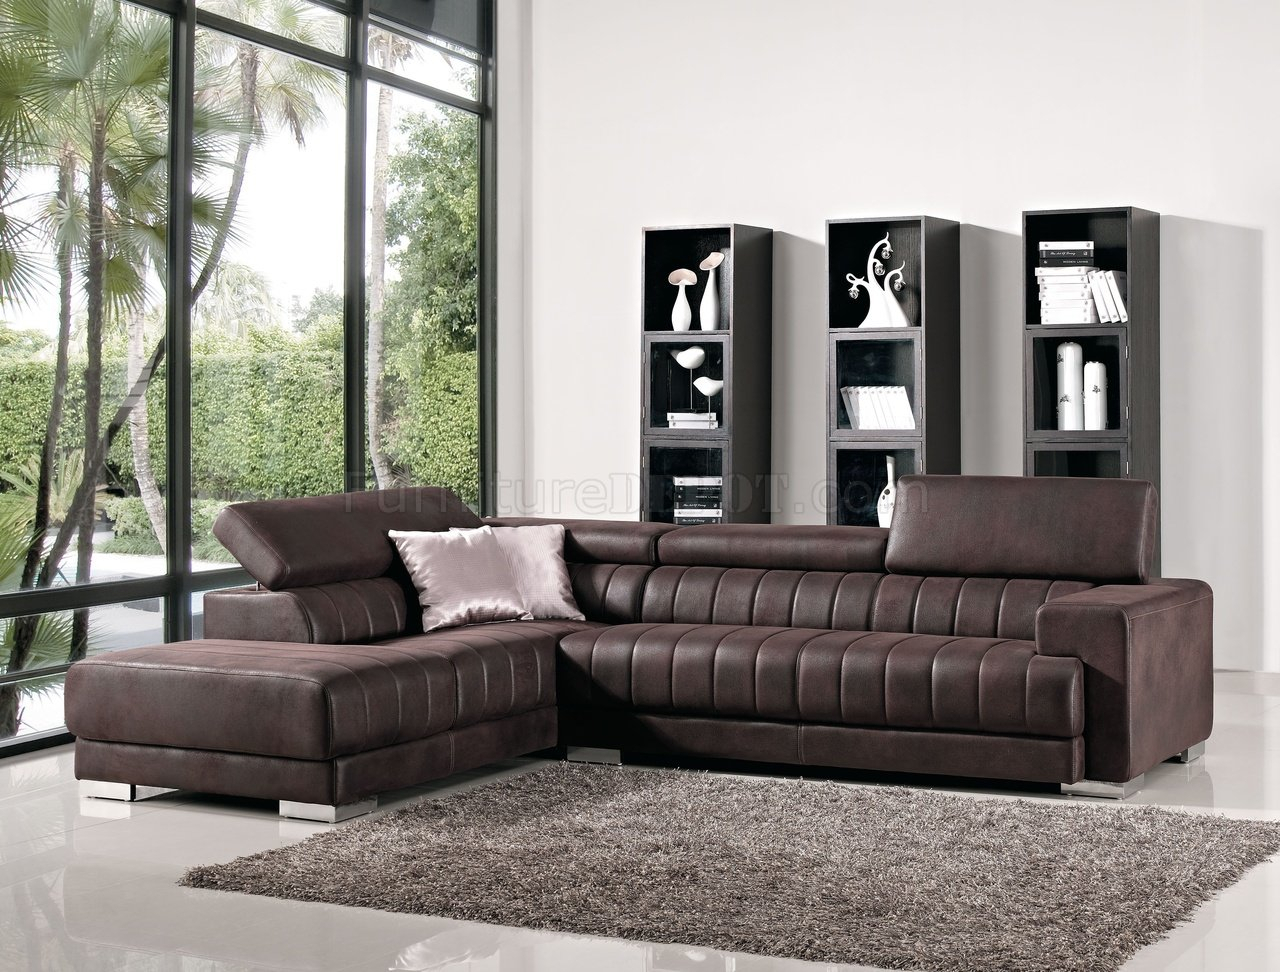 Brown Fabric Modern Sectional Sofa W/Adjustable Headrest Within Sectional Sofas (View 14 of 15)